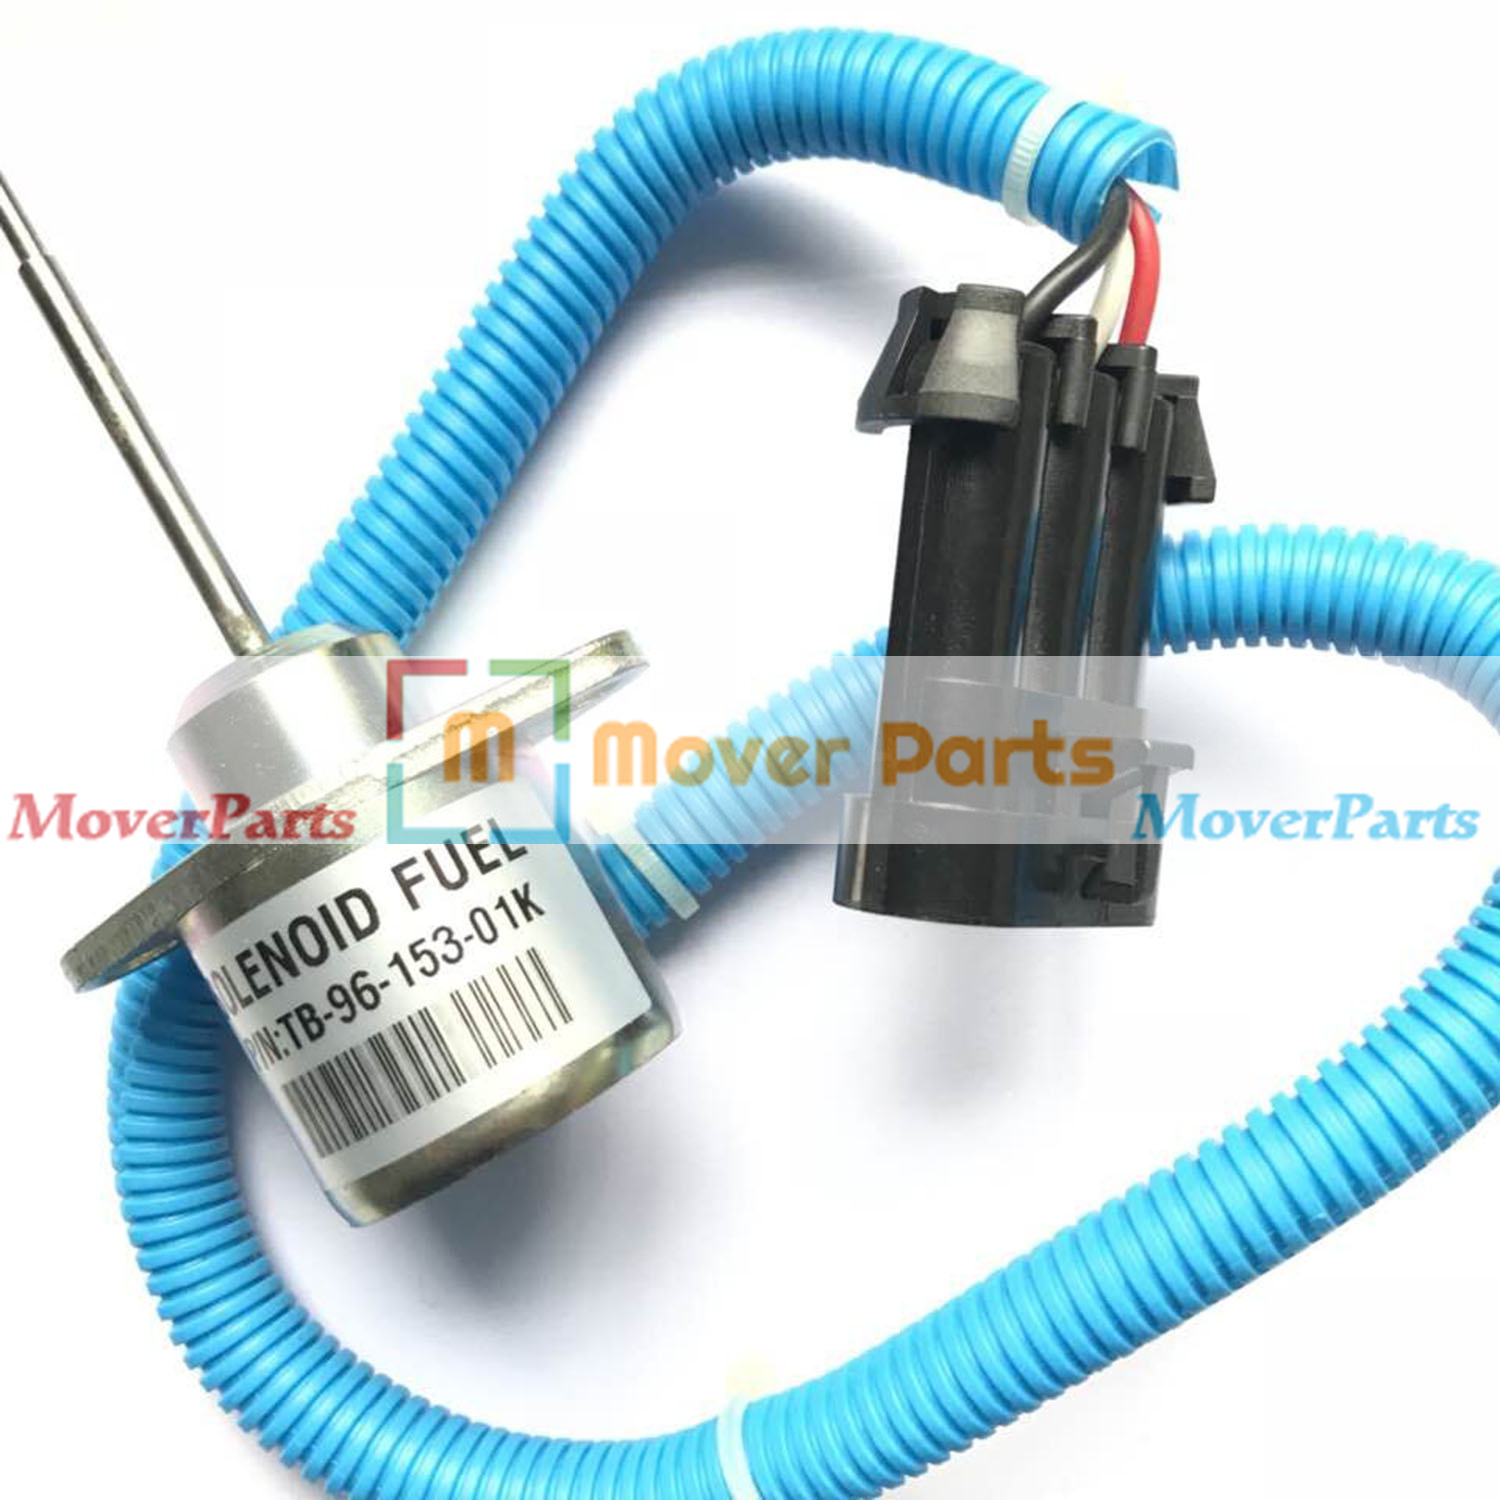 Details about Fuel Shut Off Solenoid 96-153-01K for Carrier Truck APU  CT2-29 Model PC6000